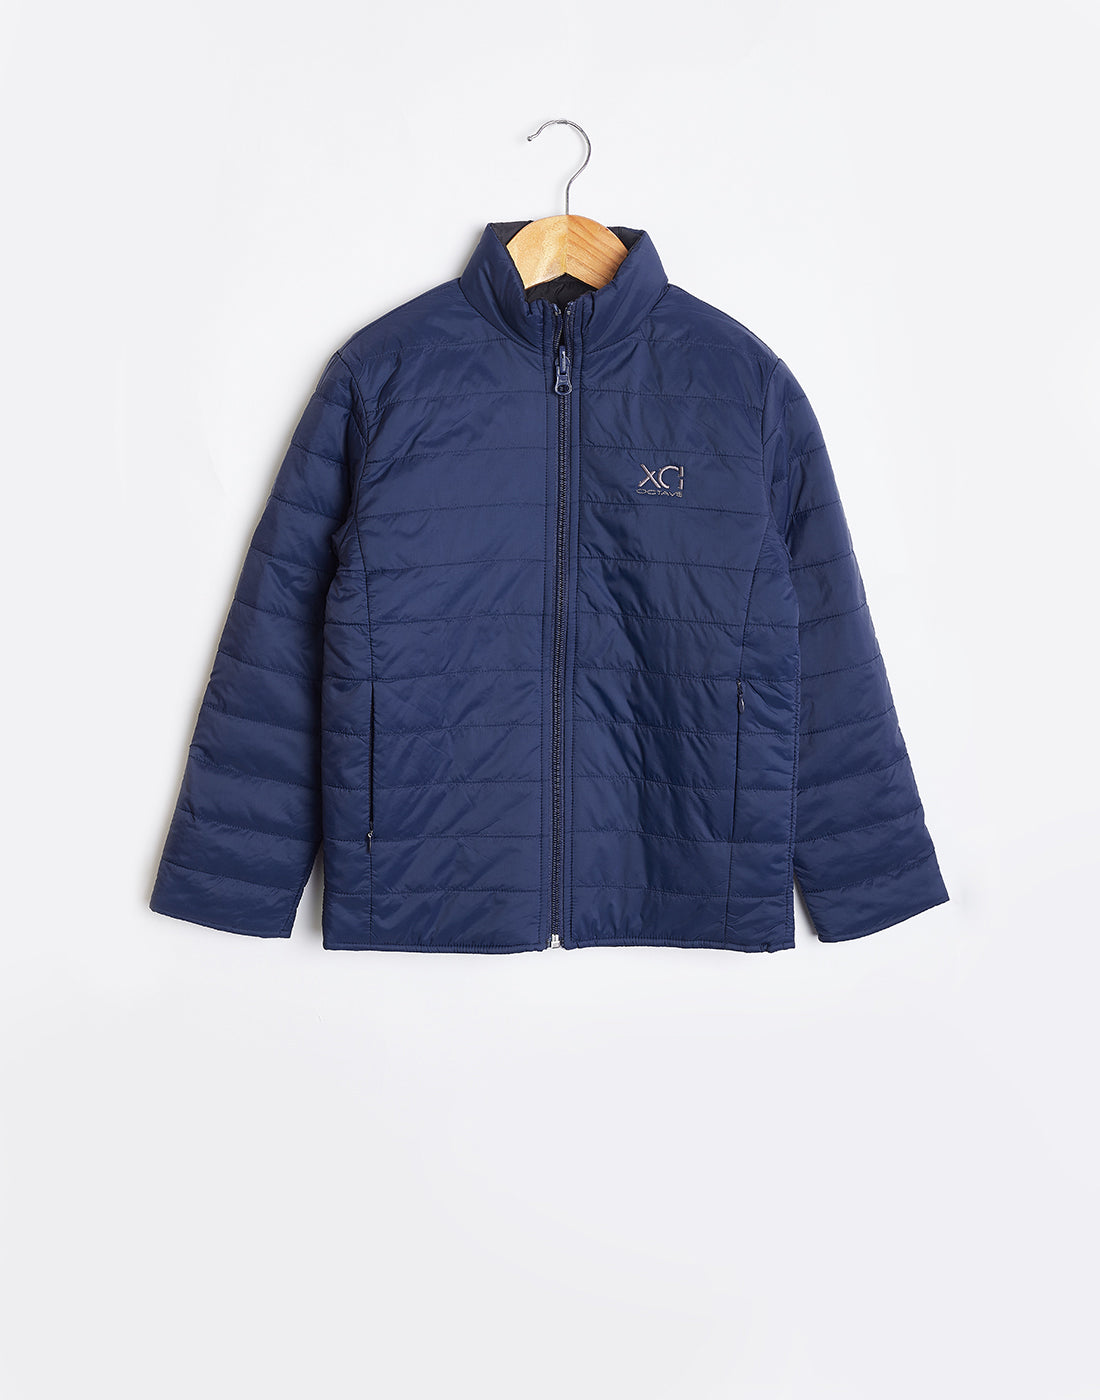 Octave Boys Denim Blue & Black Reversible Jacket